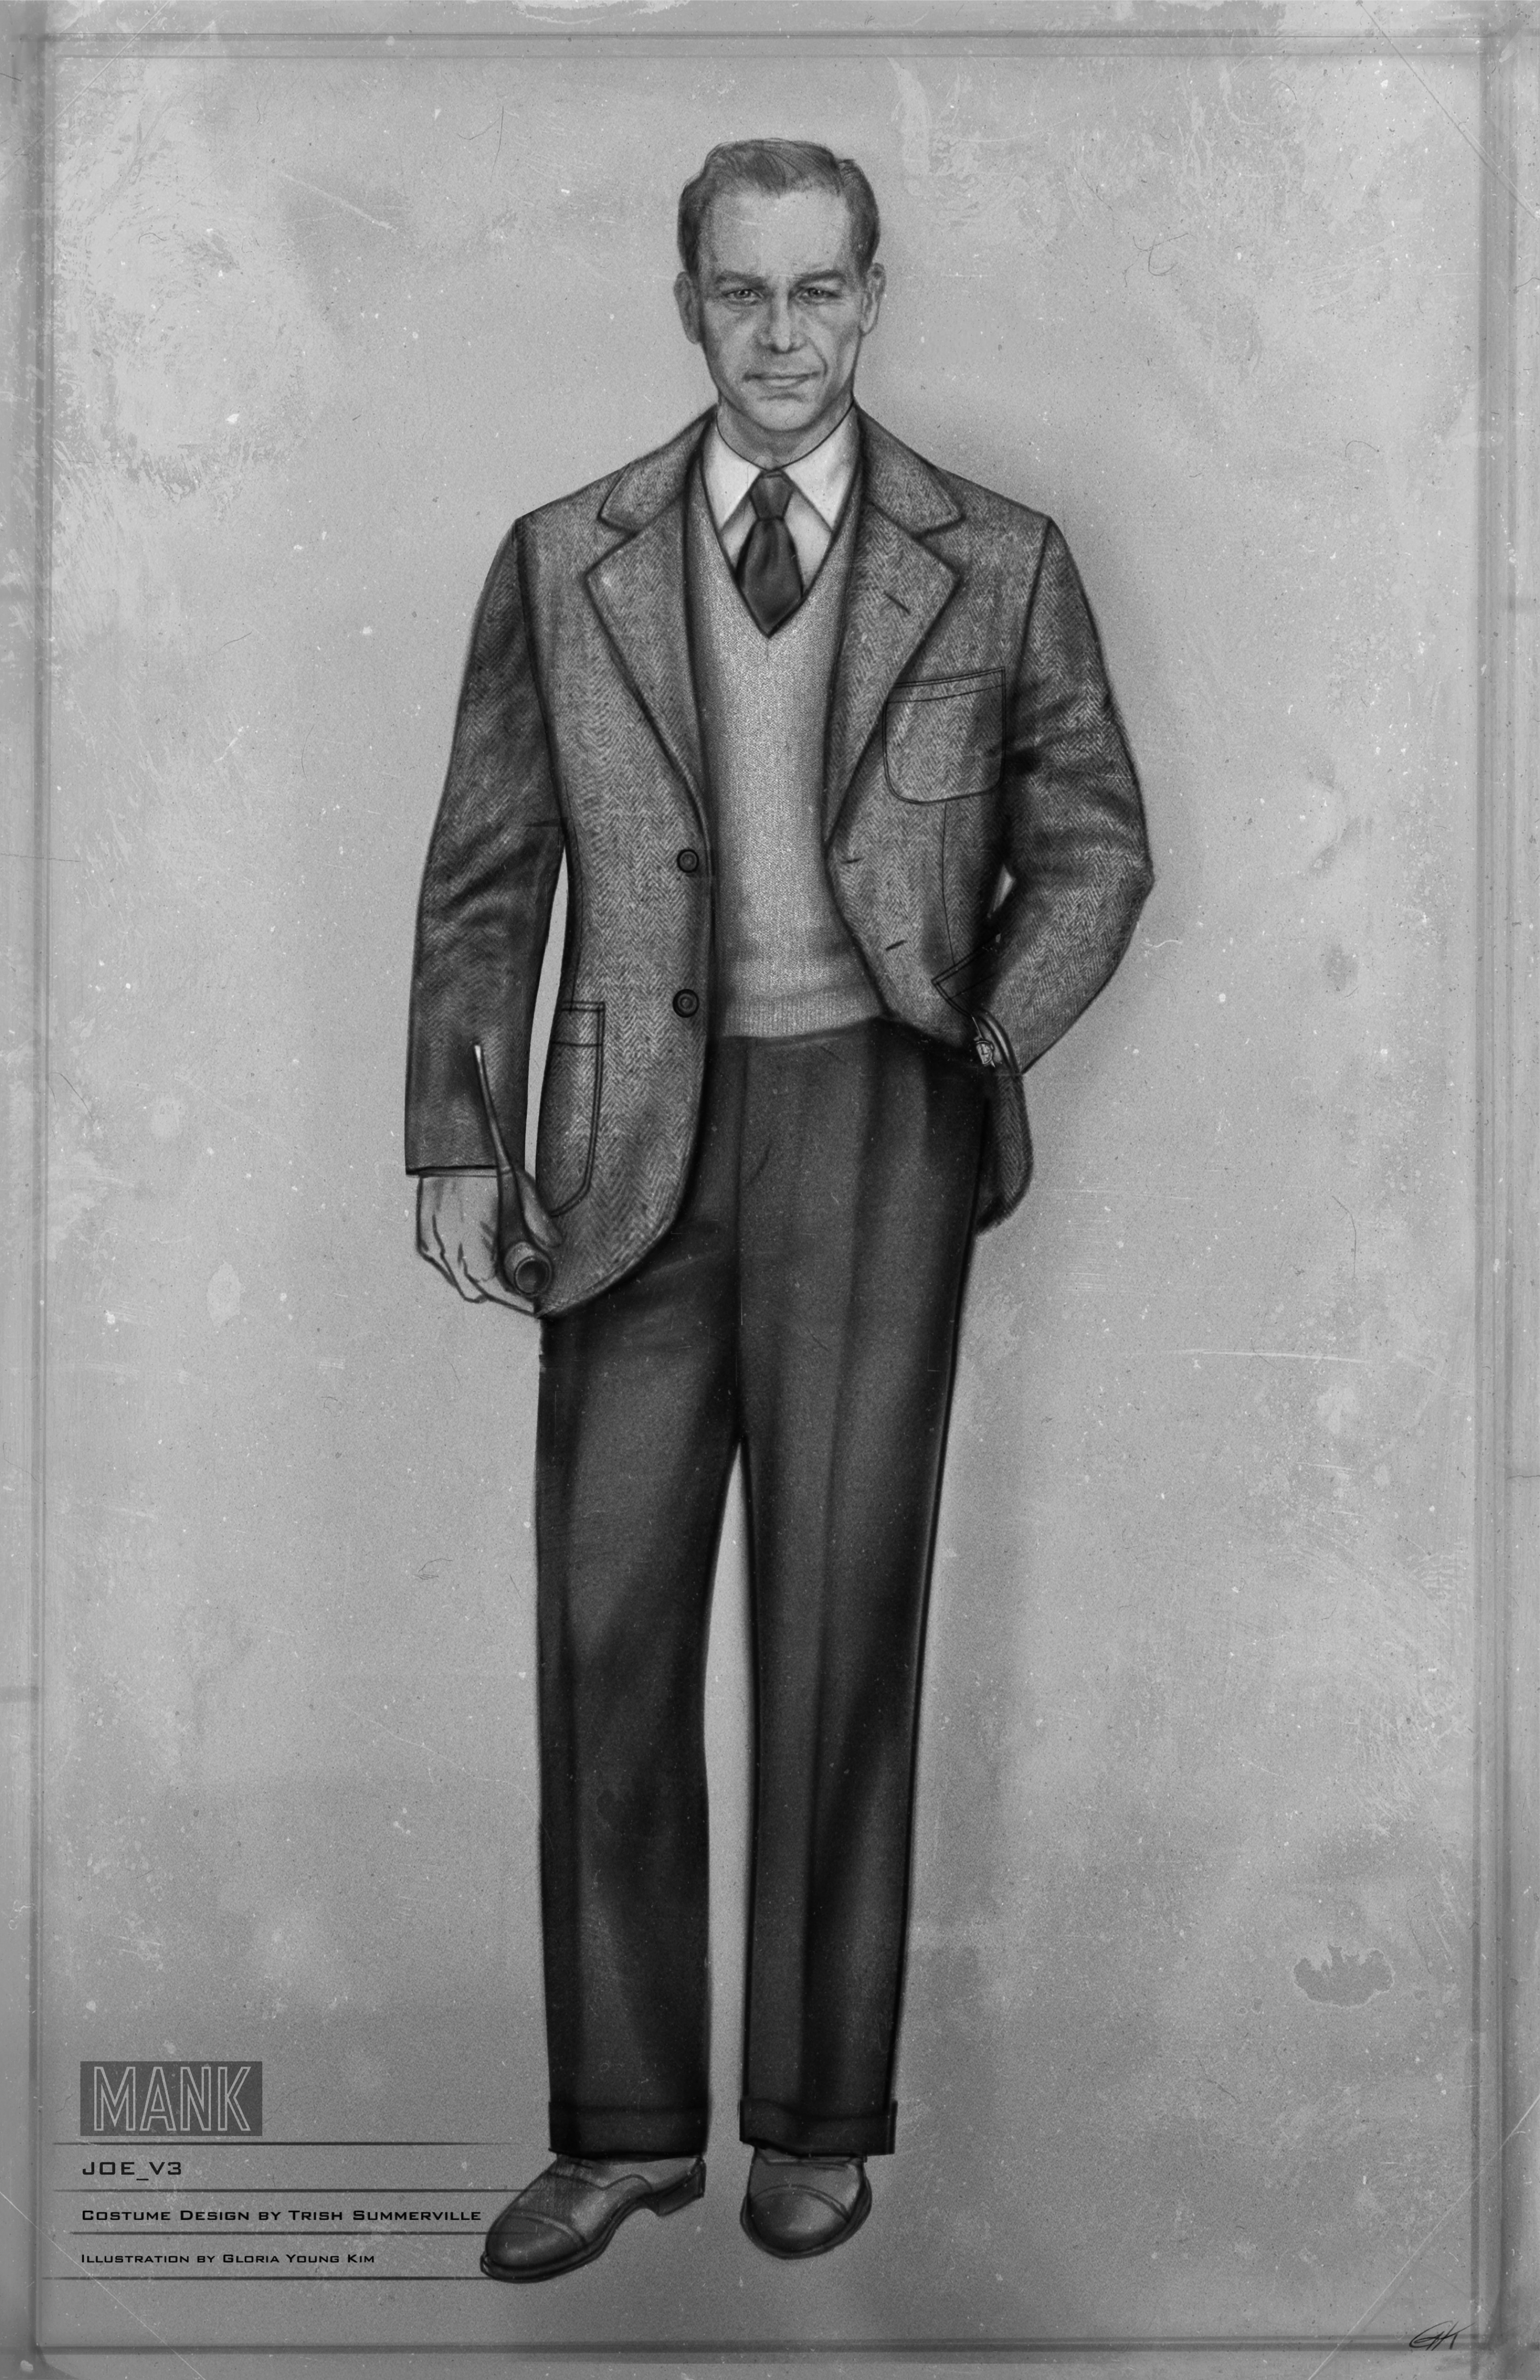 Black-and-white costume sketch of Joe Mankiewicz. He wears a gray suit with matching knit v-neck underneath his jacket, and holds a pipe.